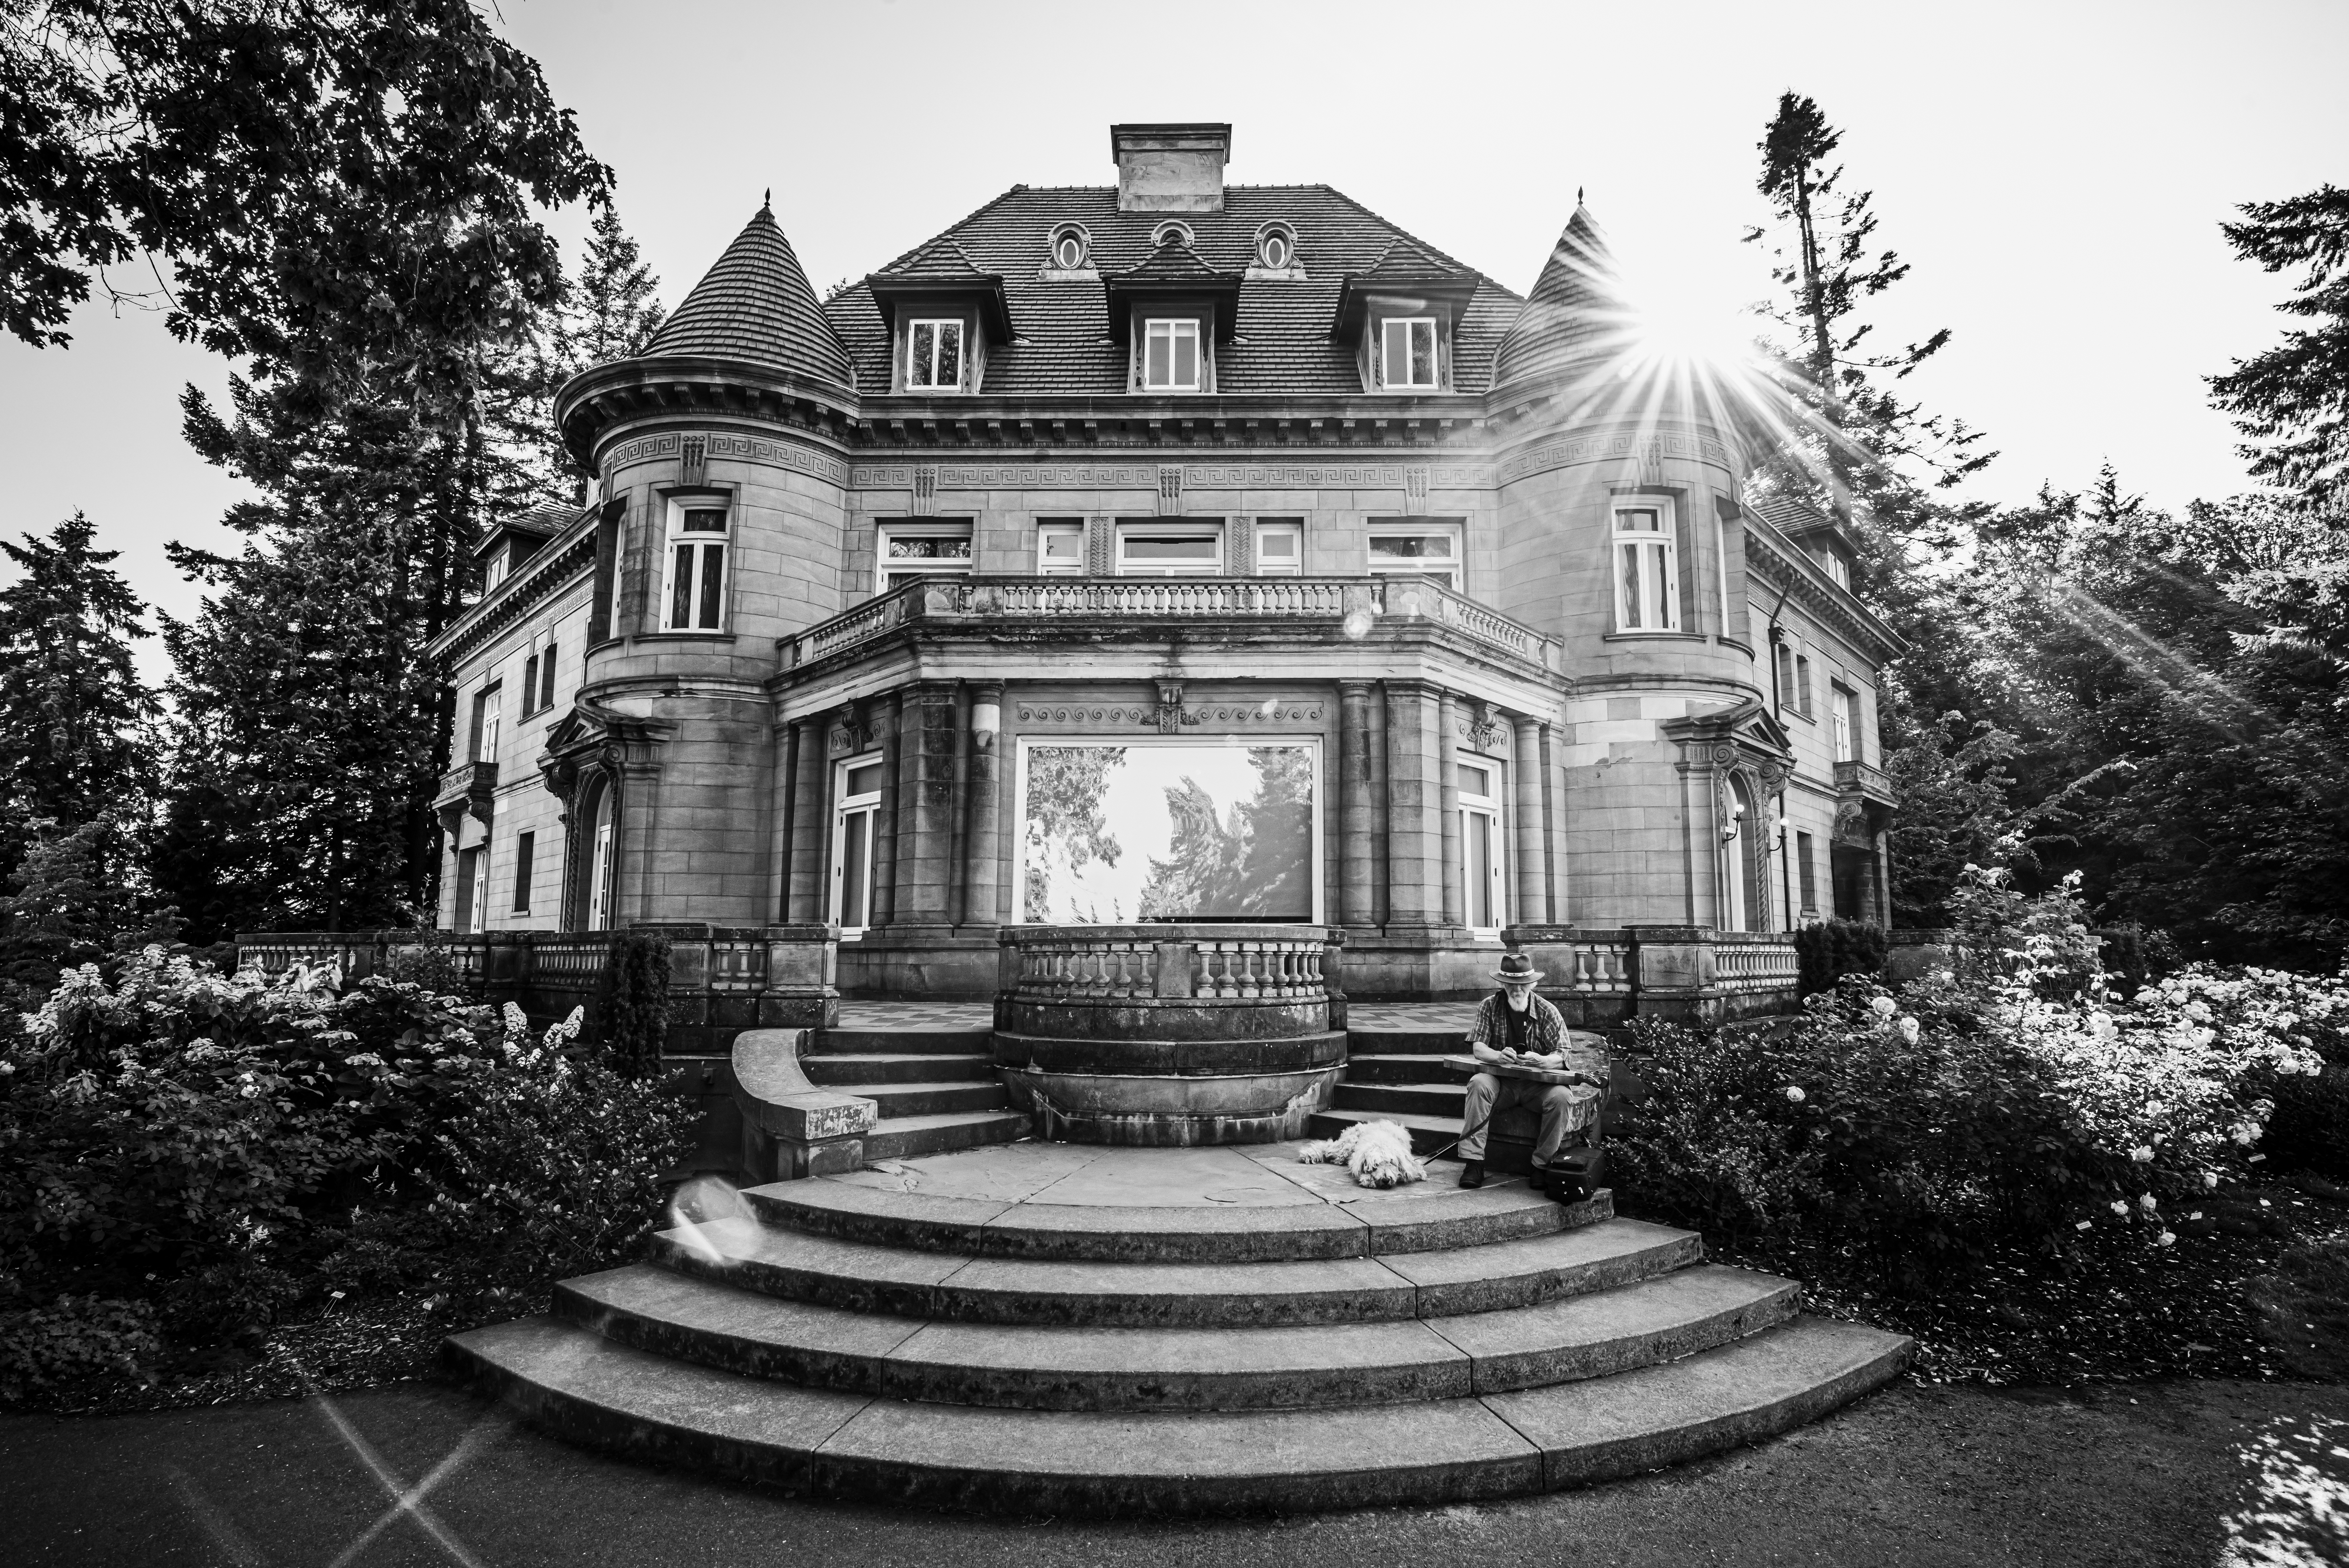 In front of the Mansion Instagram: jlcruz.photography